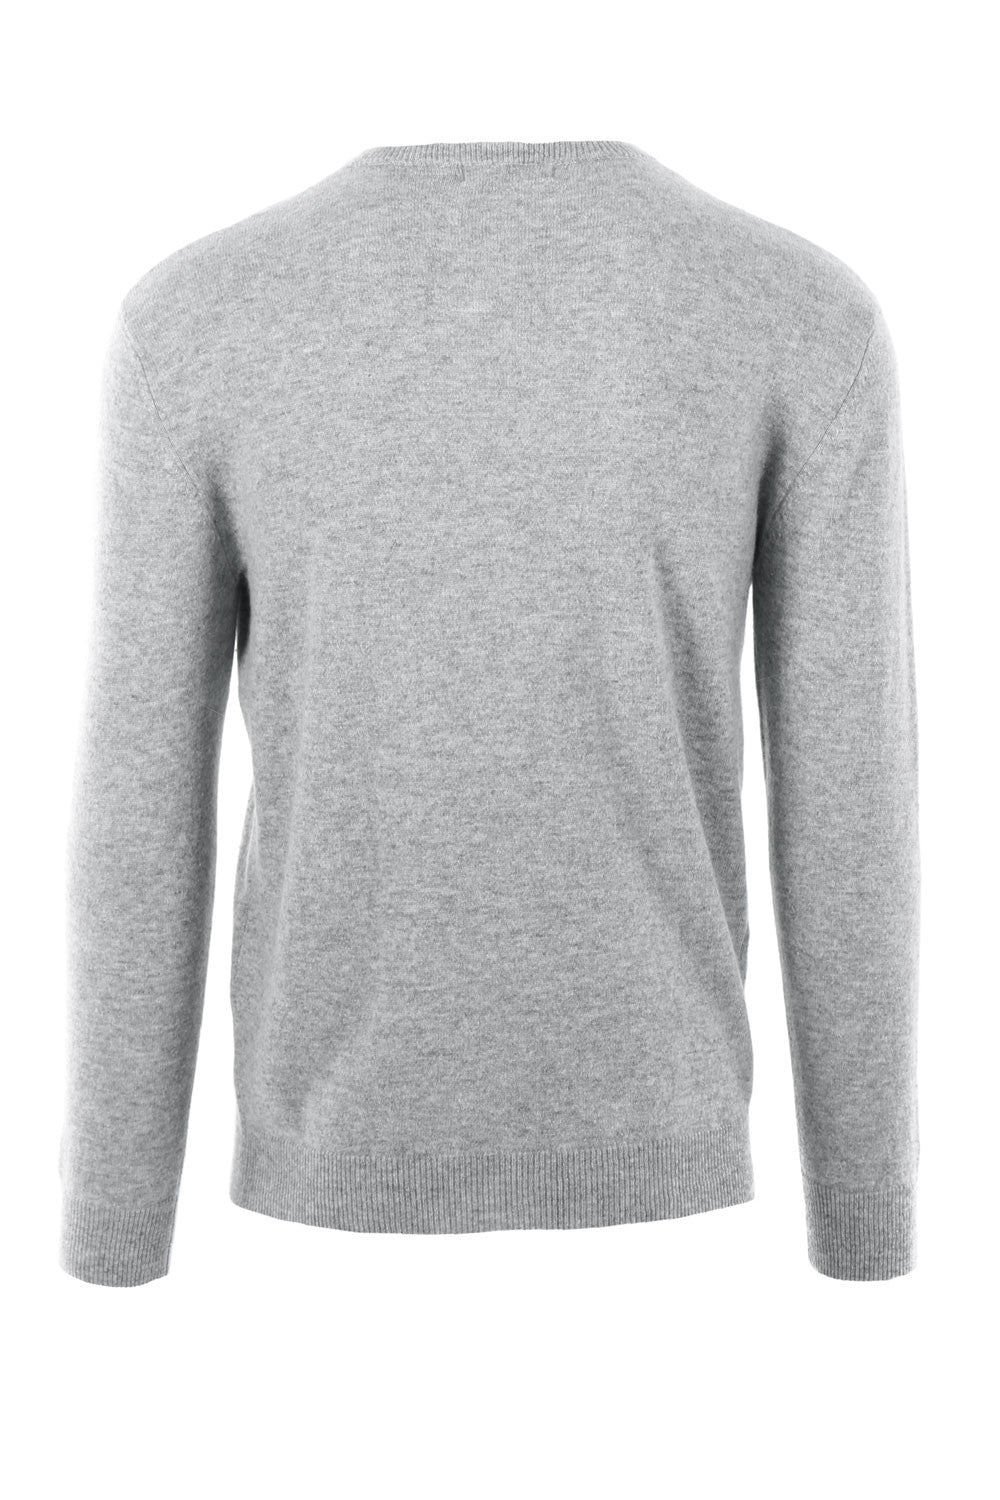 cashmere sweater round neck for men